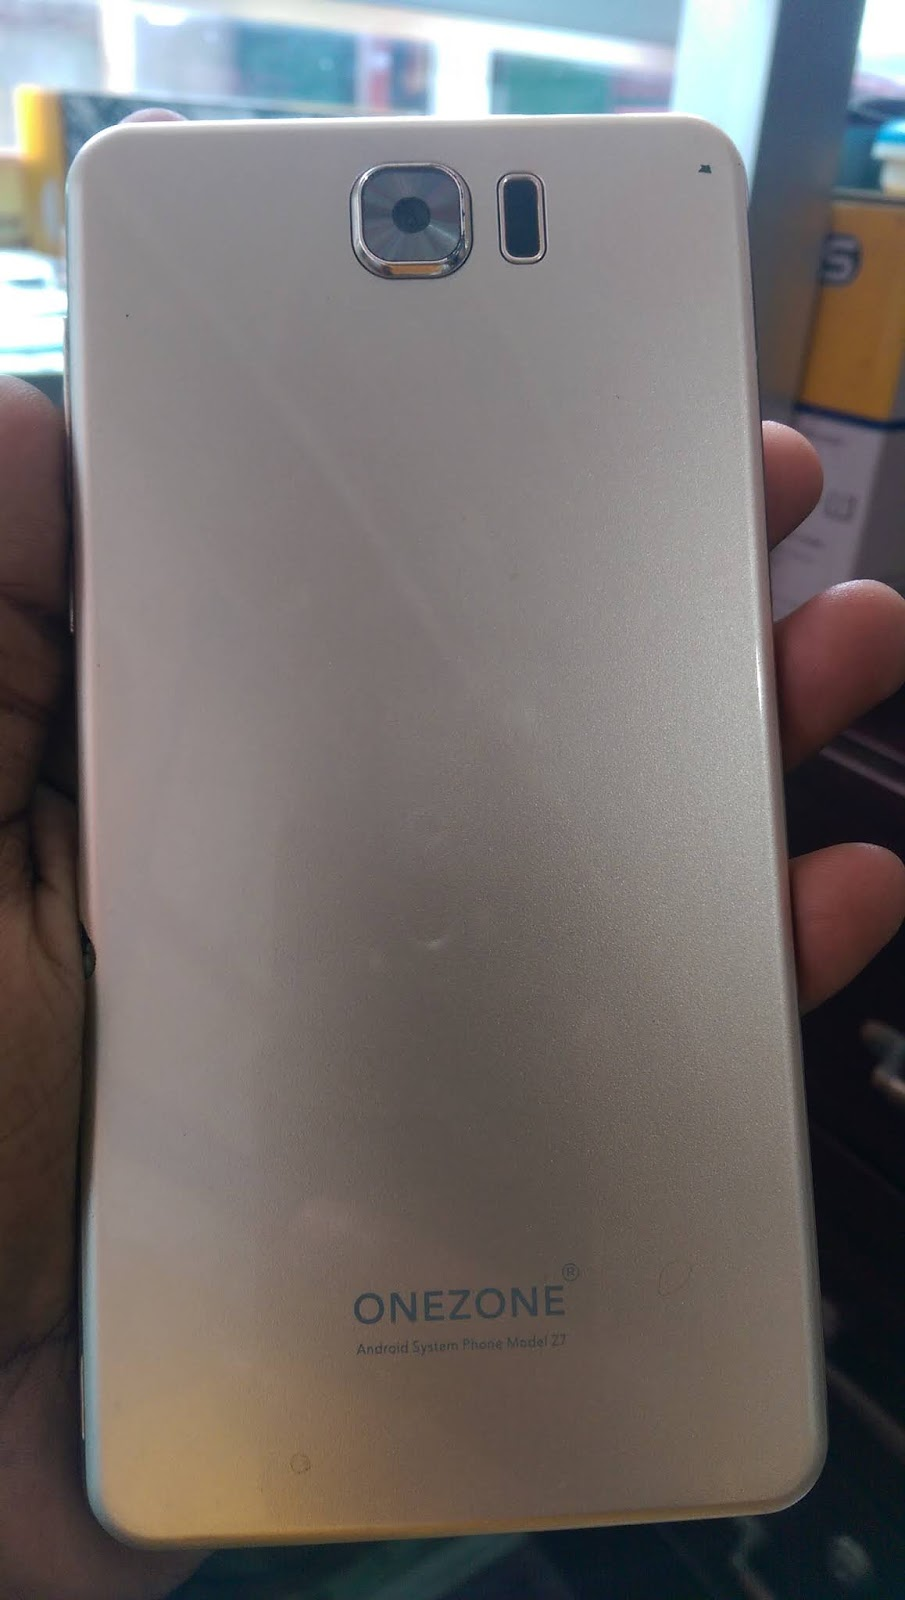 Gphone A8 Flash File Firmware MT6580 Android 51 Hang Logo Fix